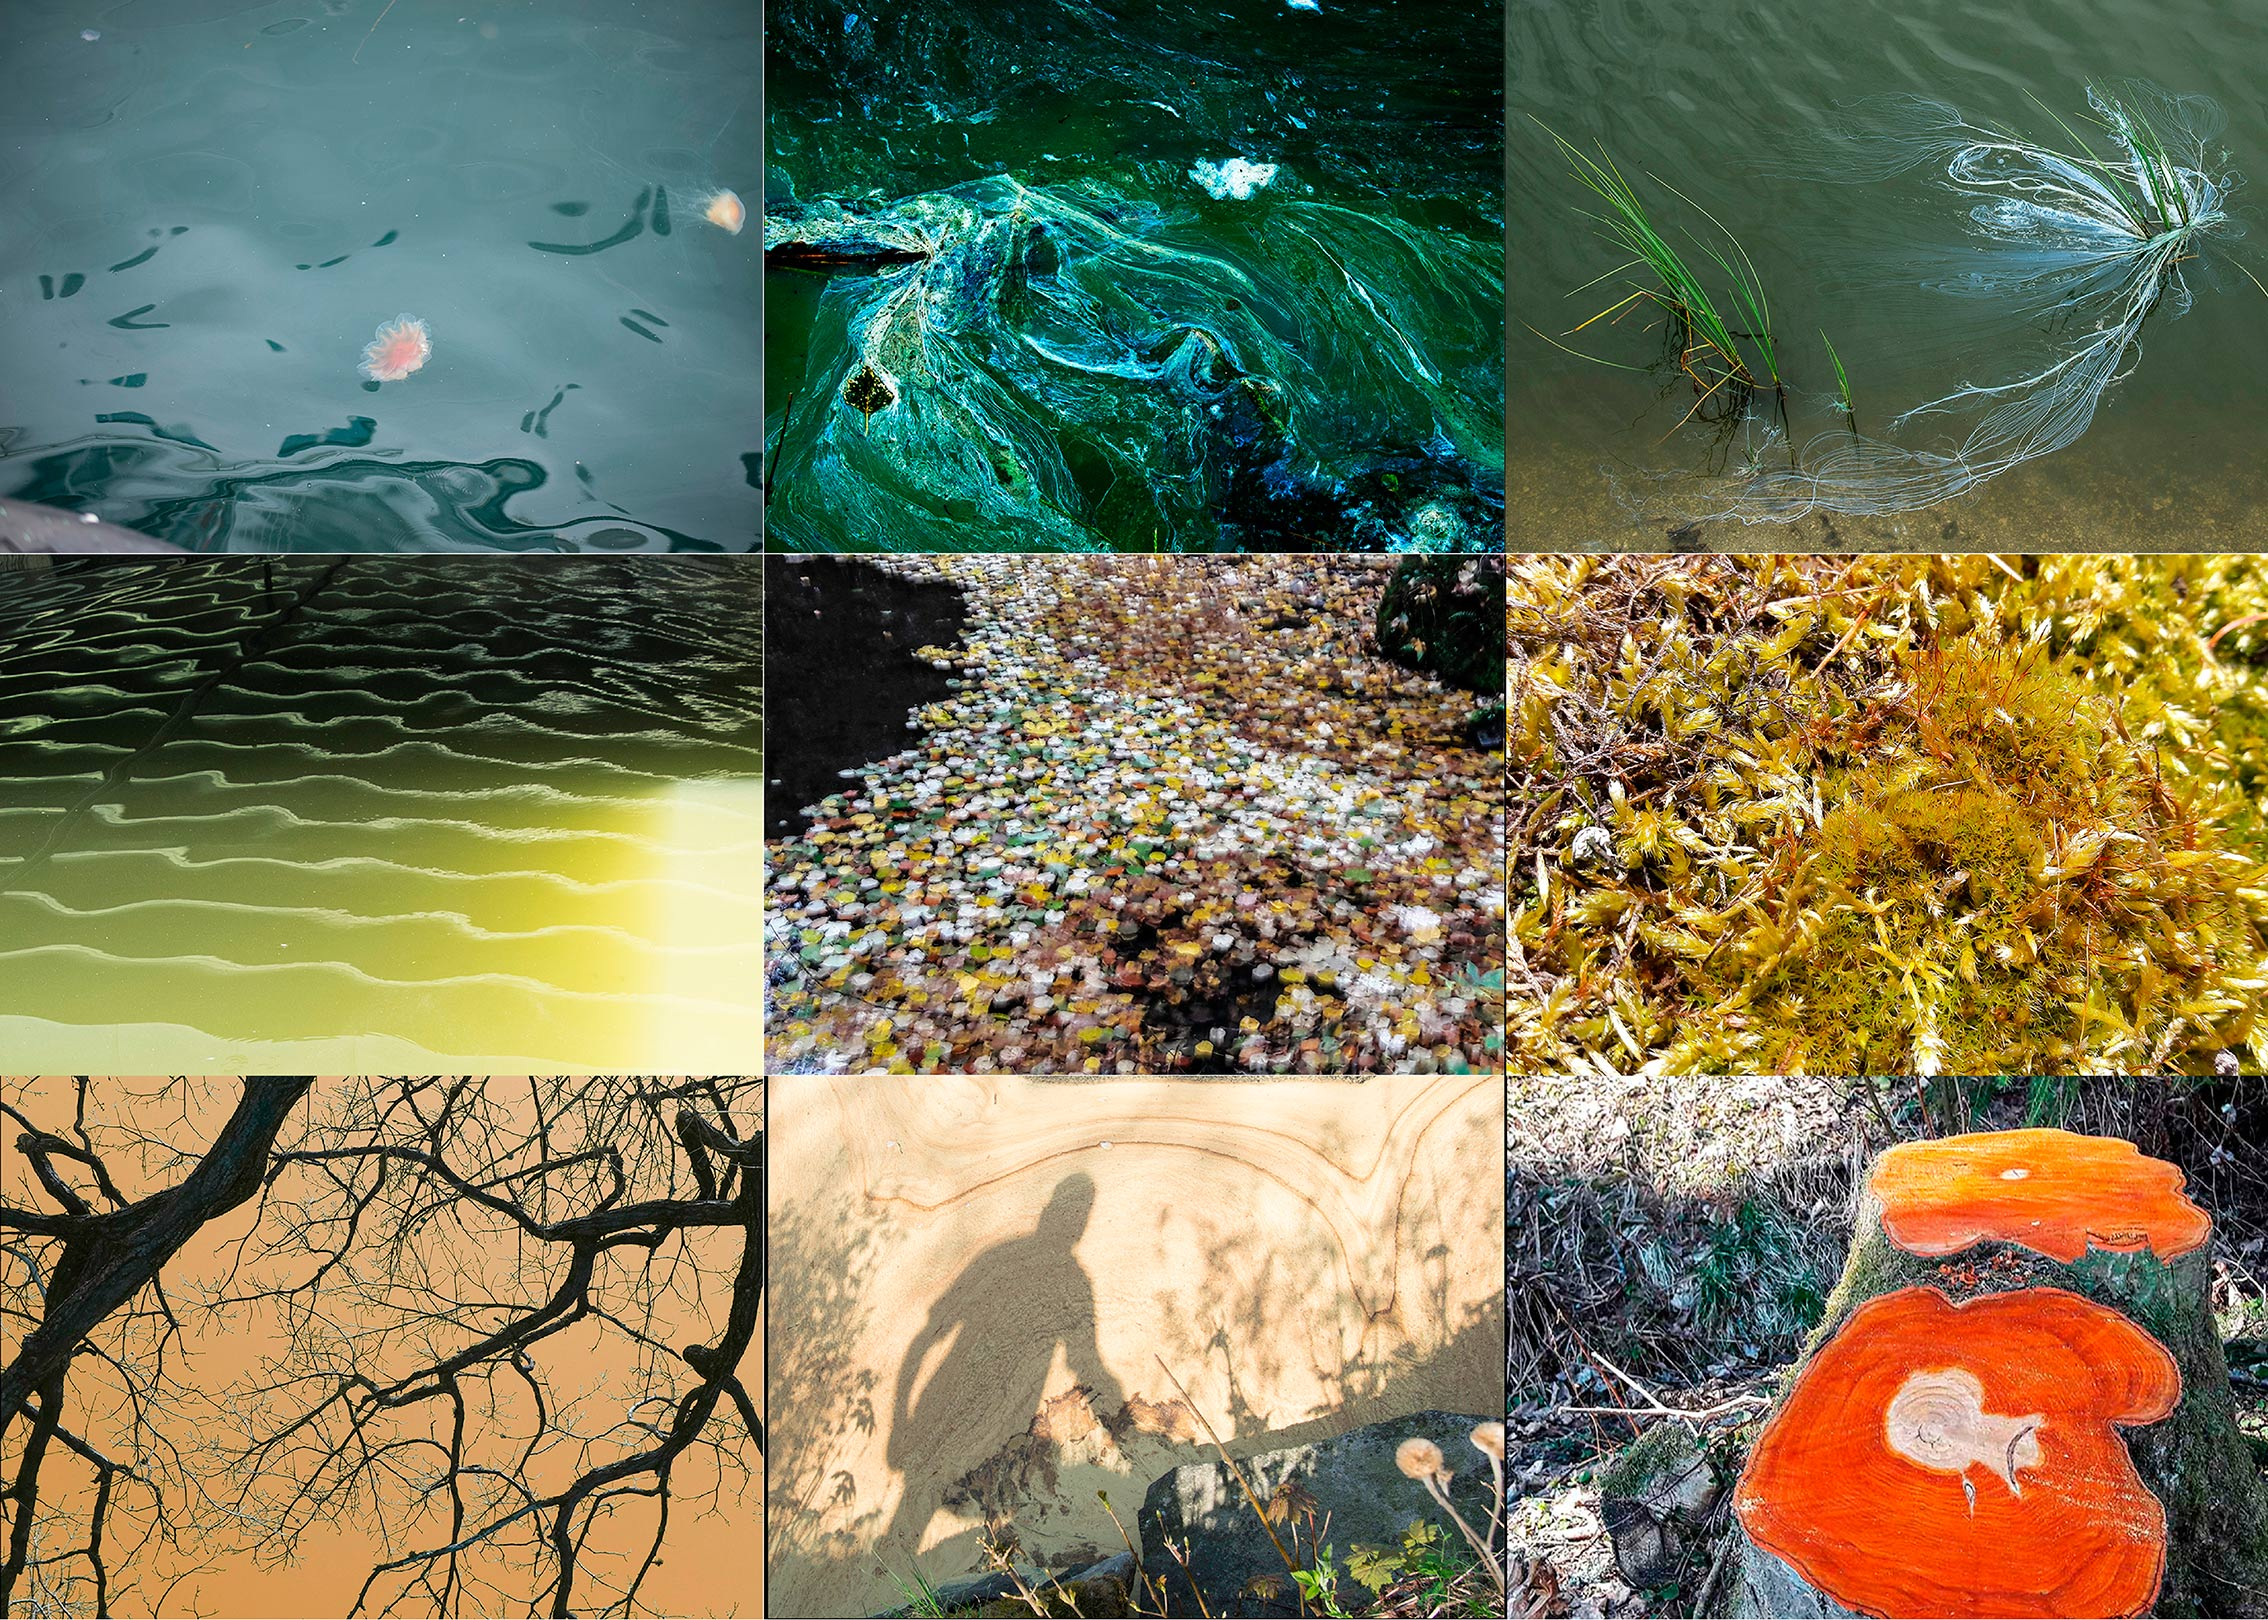 CollageGemäldeder-Natur_web